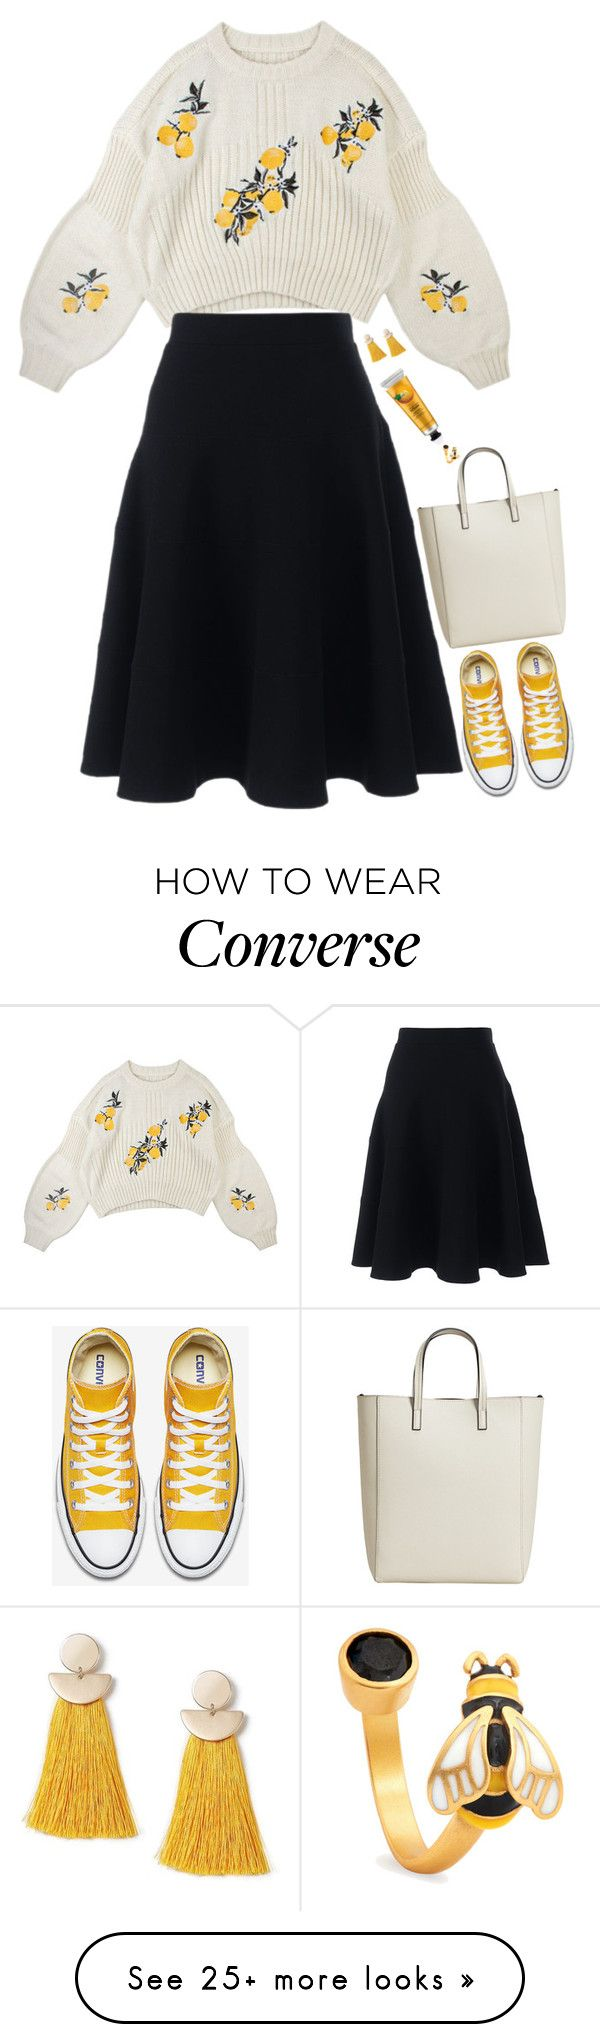 """Untitled #10596"" by miki006 on Polyvore featuring Chrysalis, Miss Selfridge, MANGO and Lands' End"